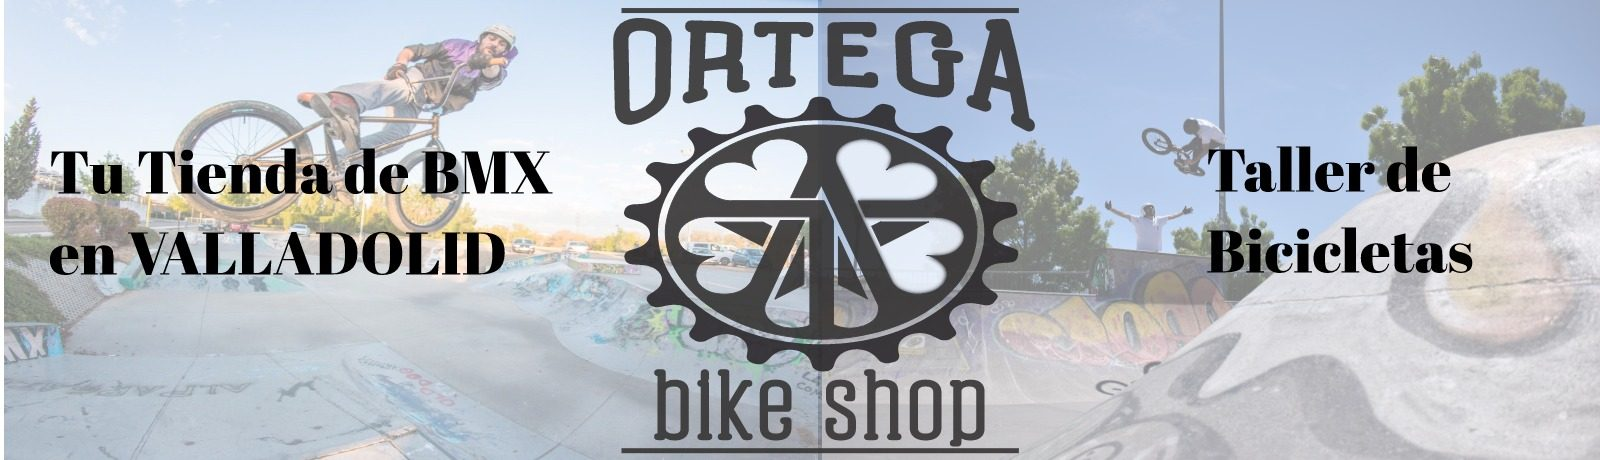 Ortega Bike Shop